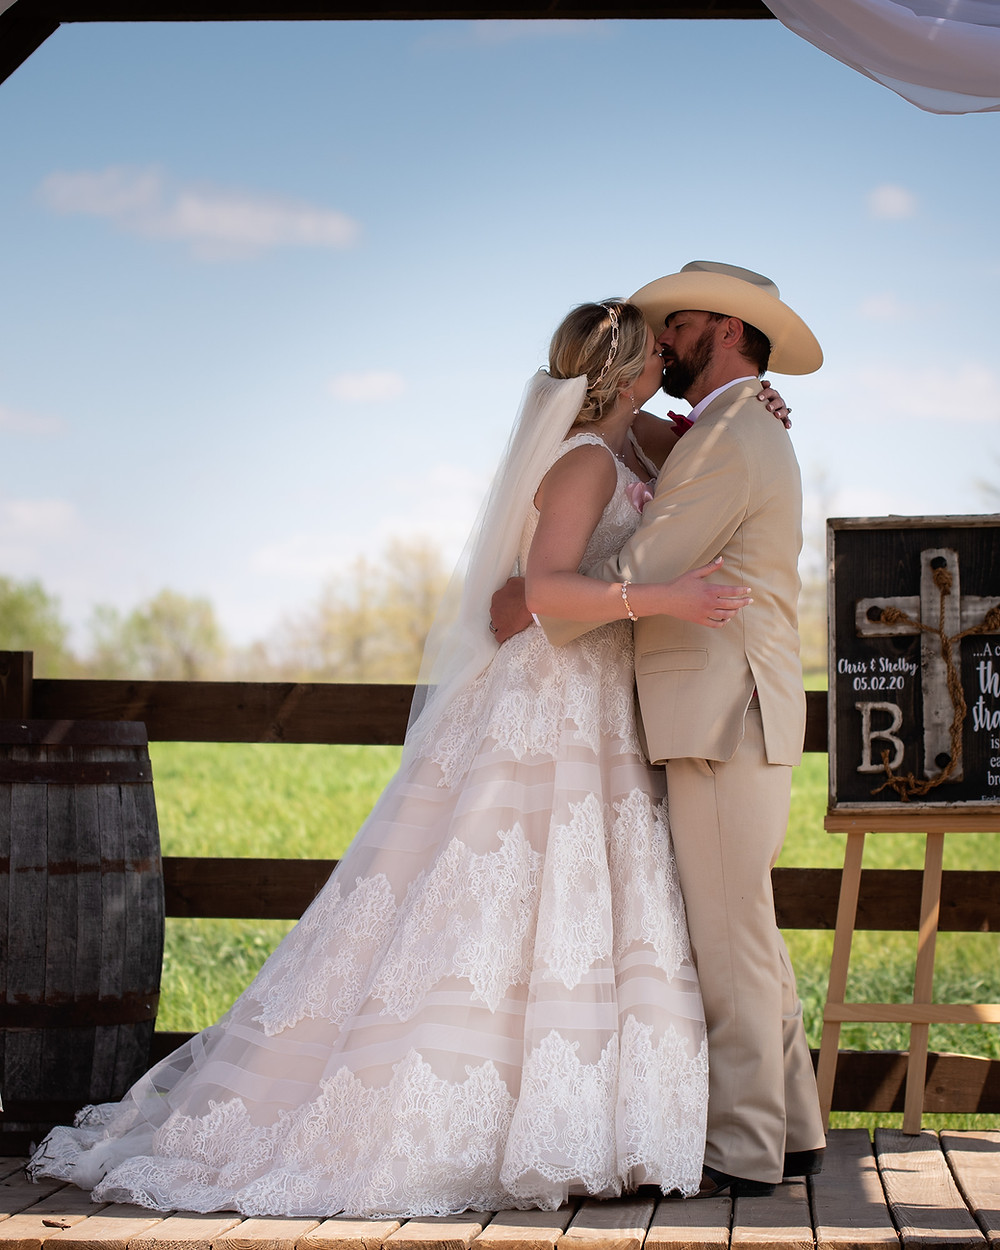 Shelby & Chris Blatter share their first kiss as husband & wife at their Roca Berry Farm wedding